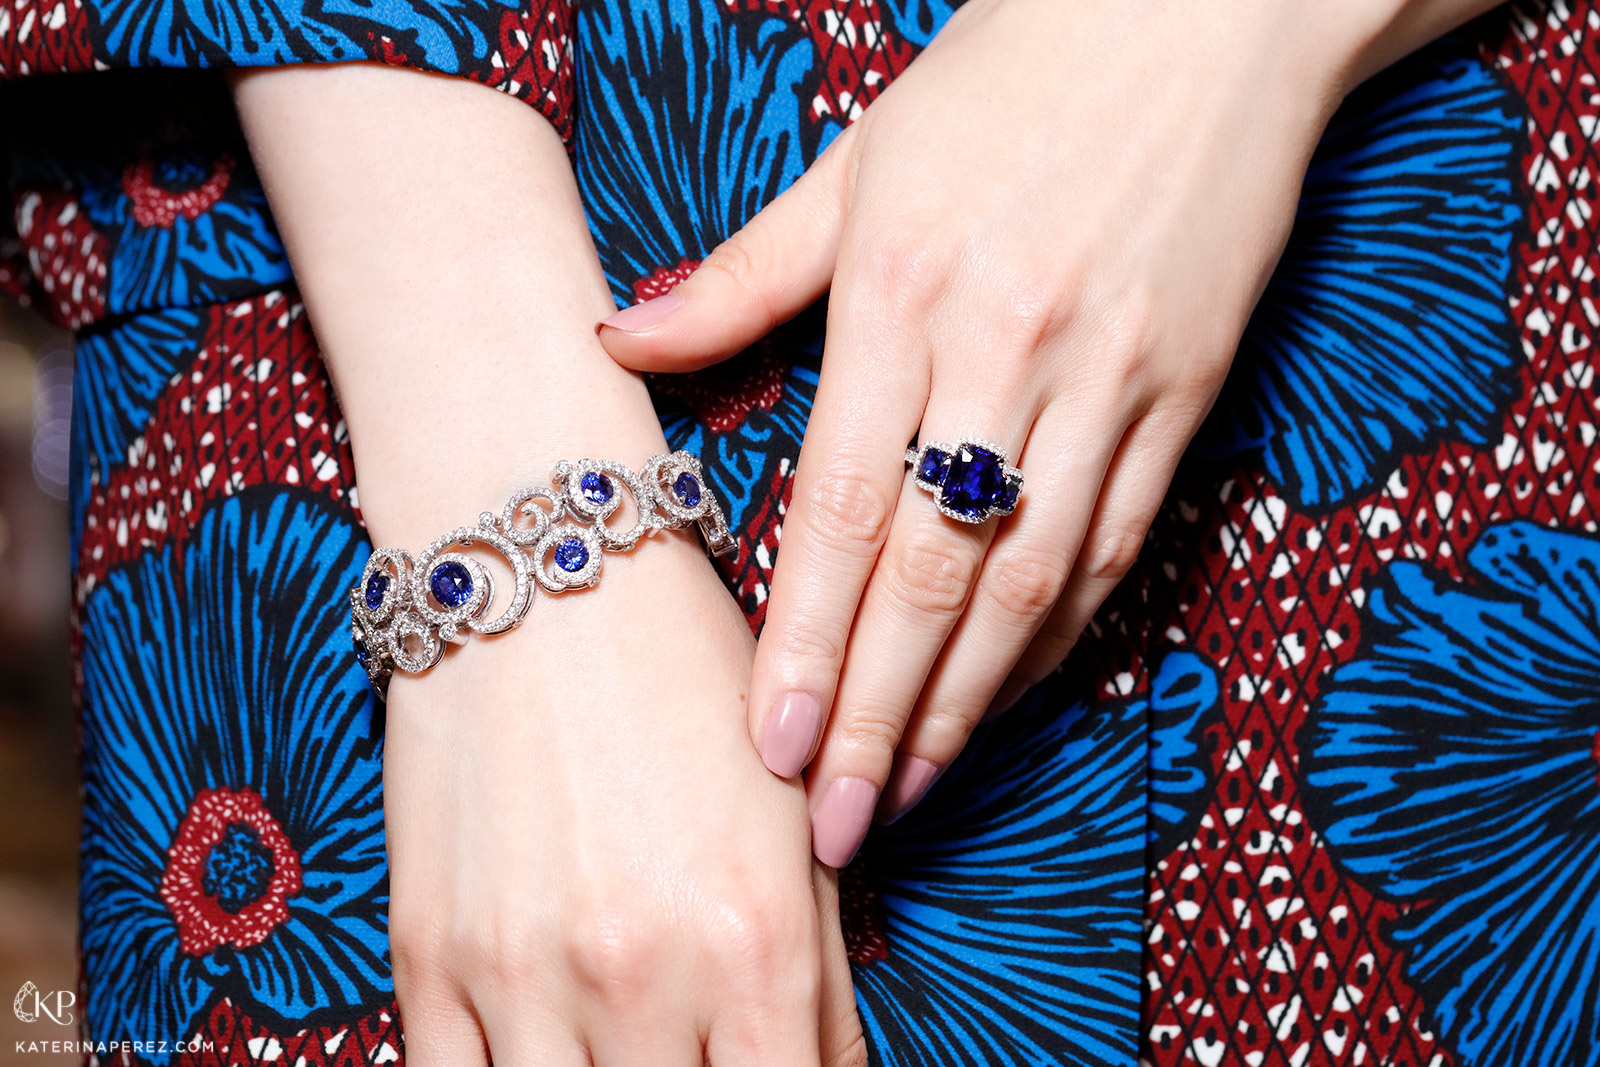 Omi Privé sapphire and diamond trilogy ring and sapphire and diamond bracelet